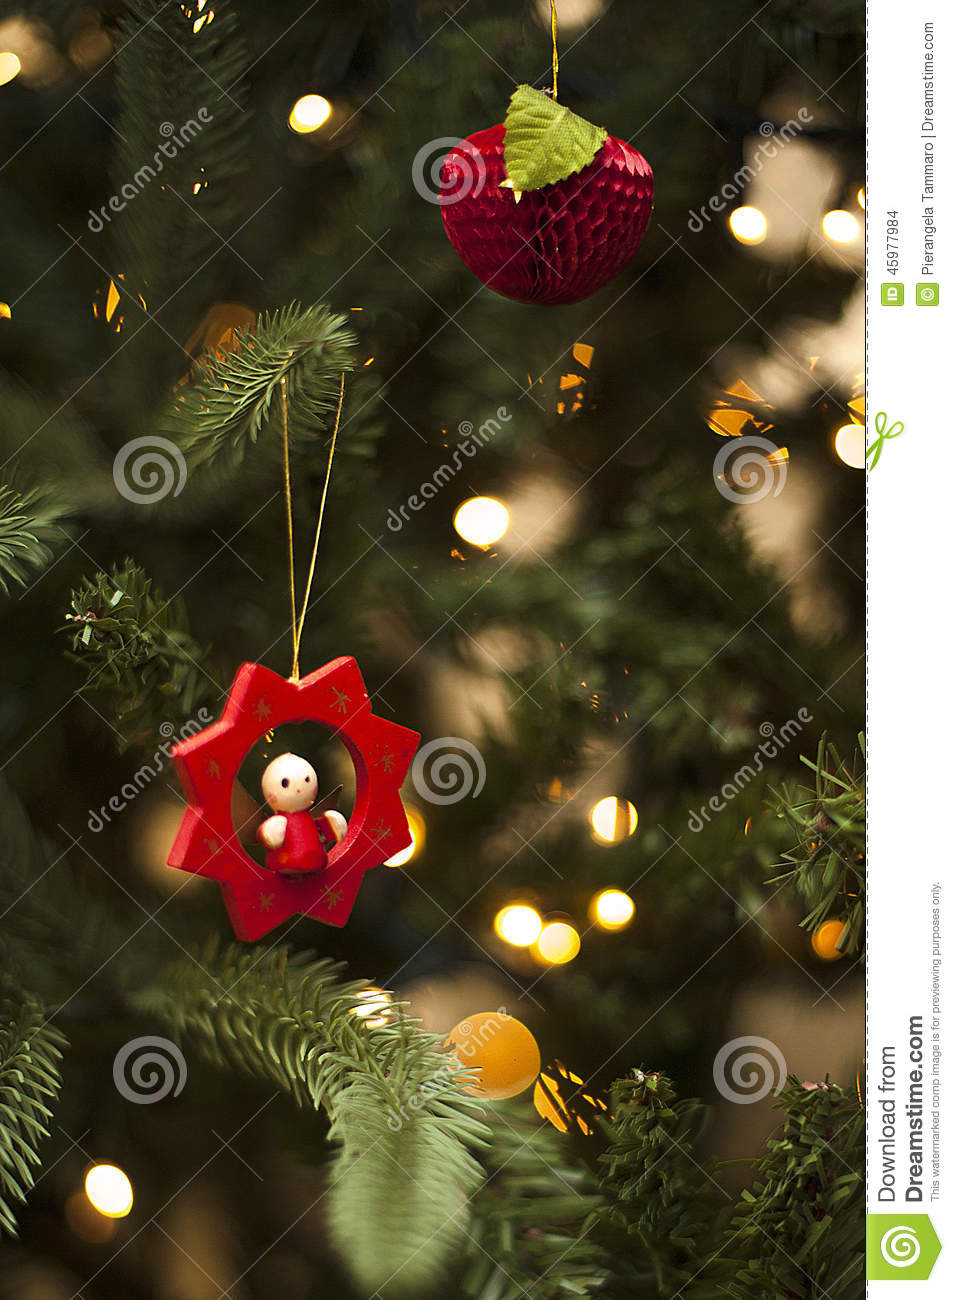 Red Christmas Bauble with tree and ornament green